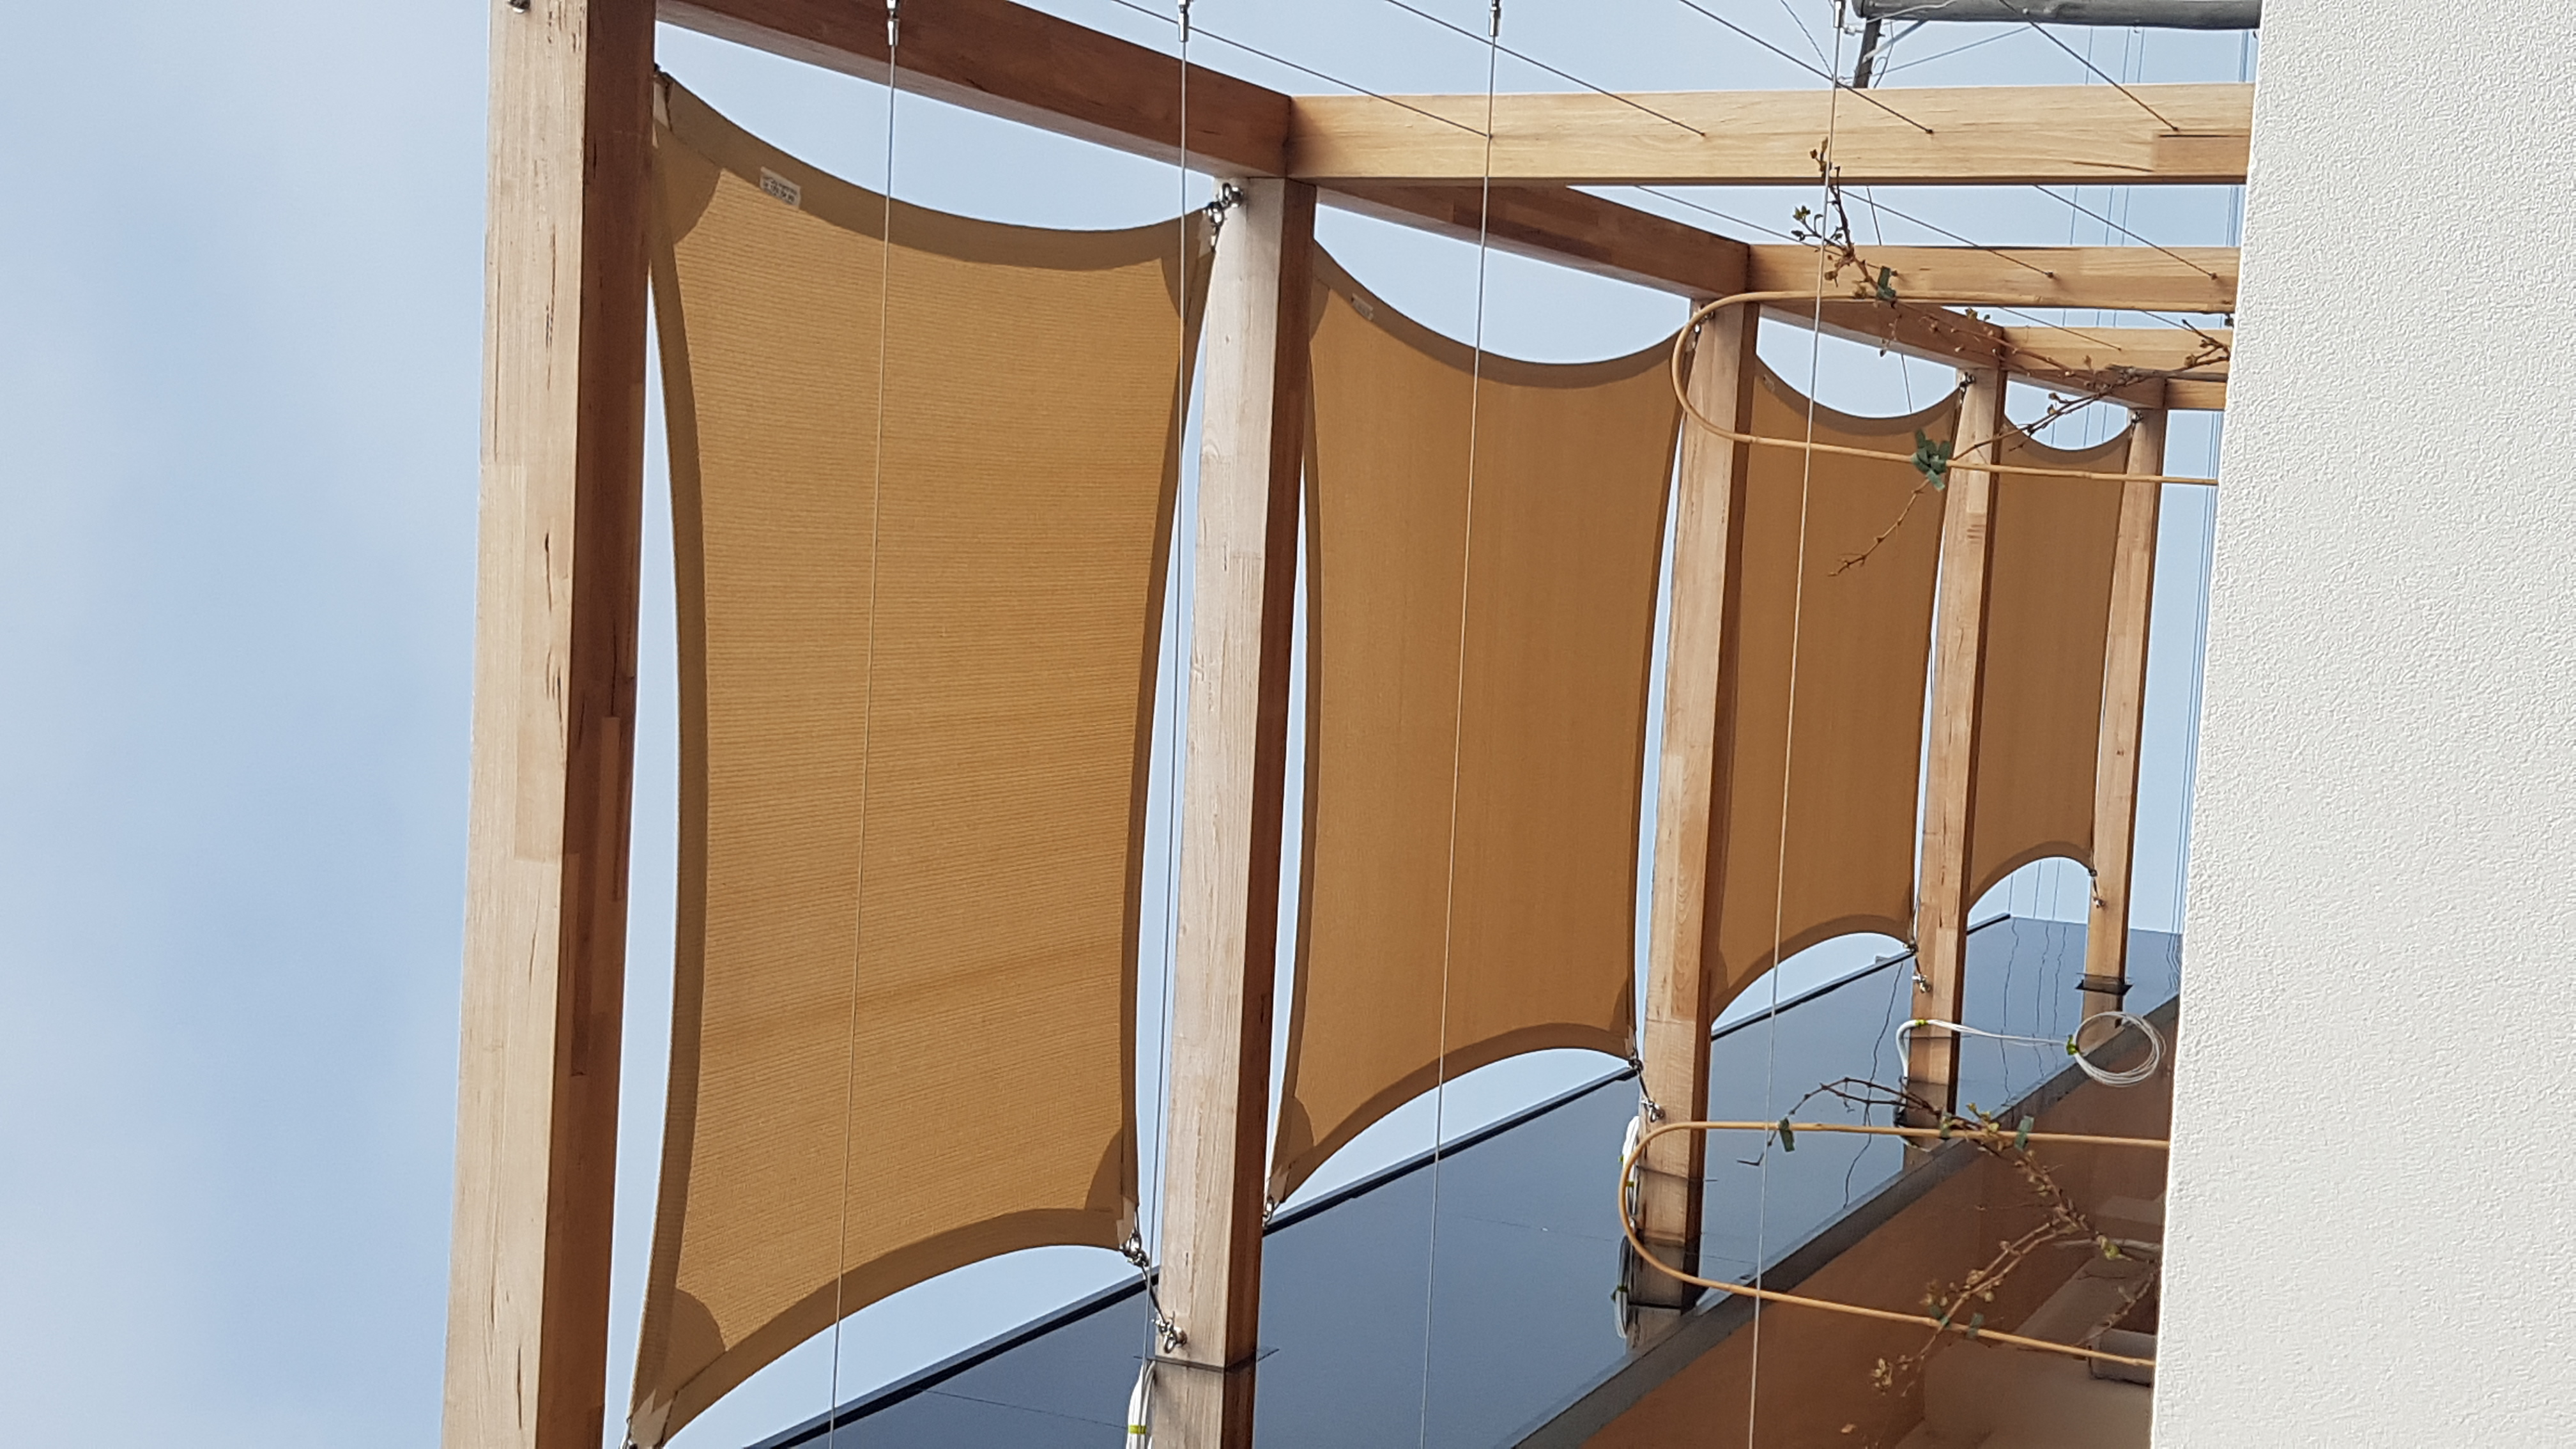 Sail_CIty_Shade_Sails_in_Doubleview_Ex32_Desert_Sand.jpg